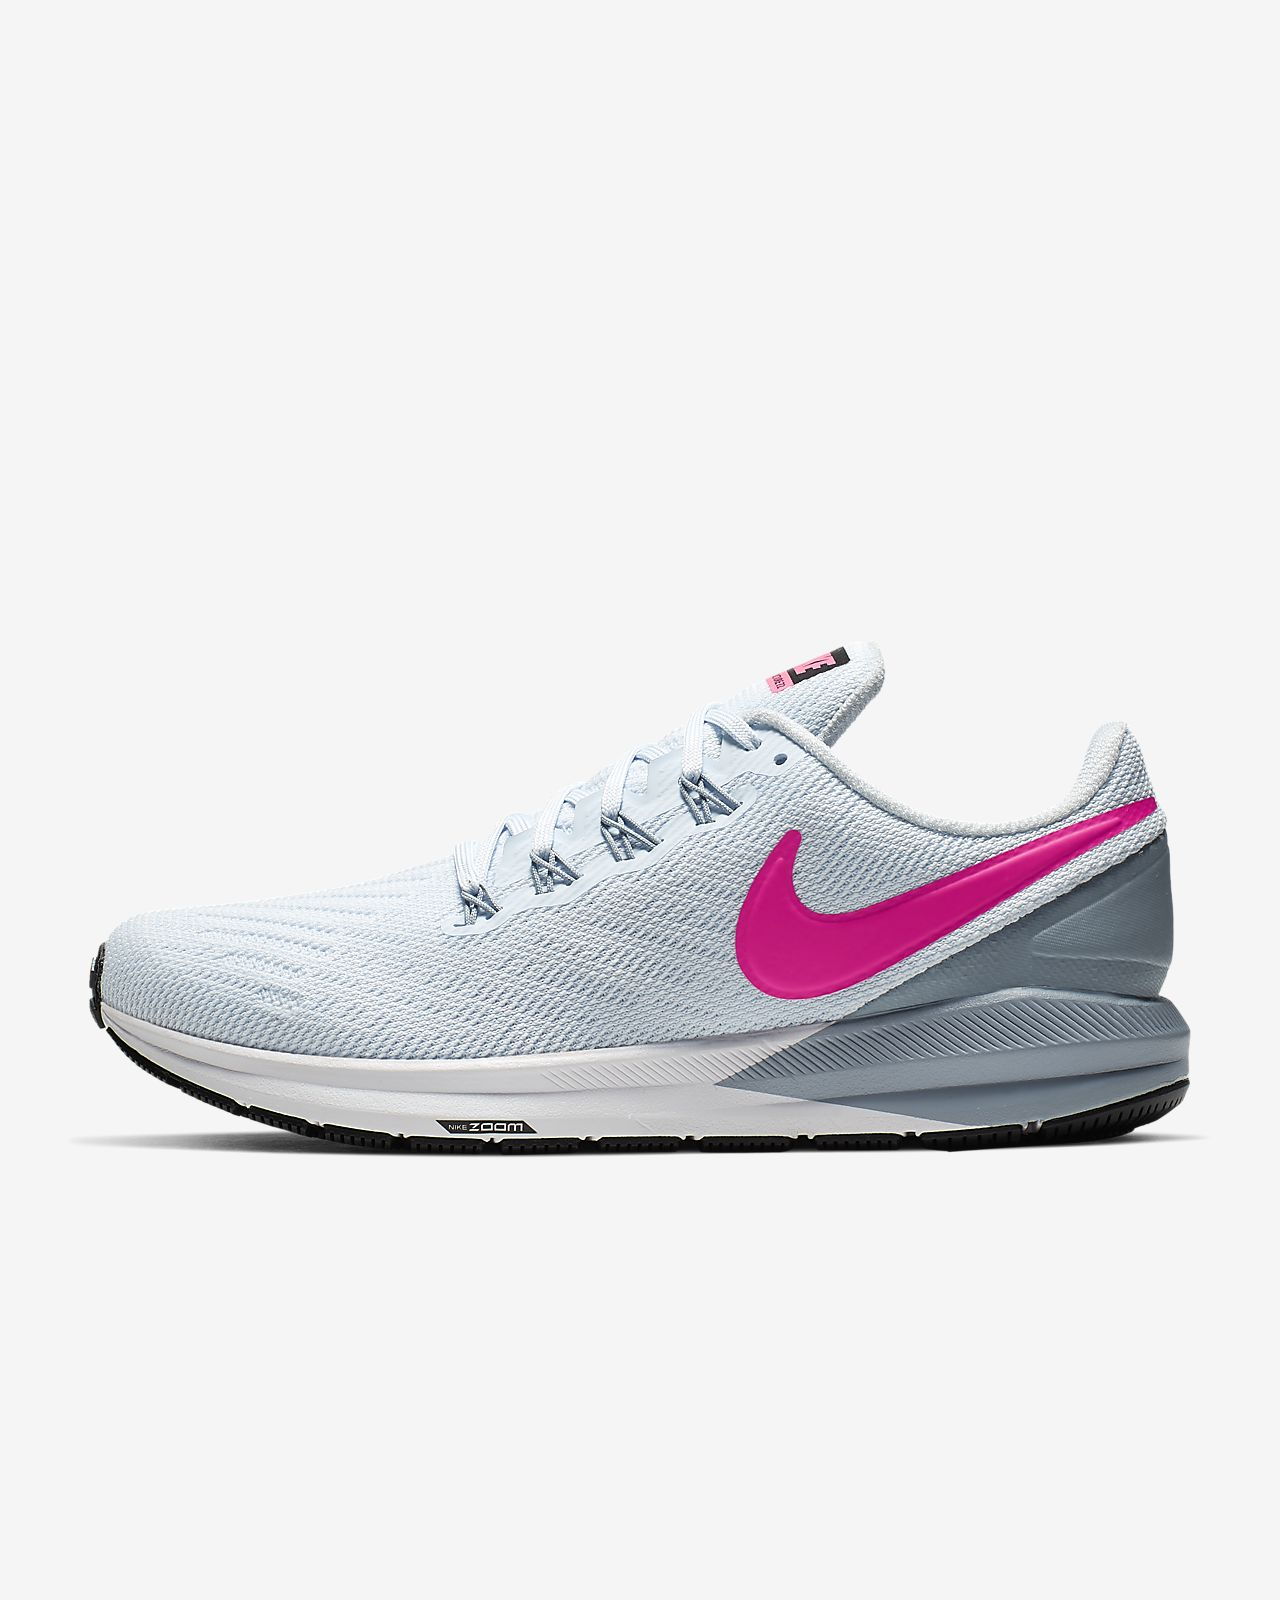 7c86d463e30 Nike Air Zoom Structure 22 Women s Running Shoe. Nike.com ZA